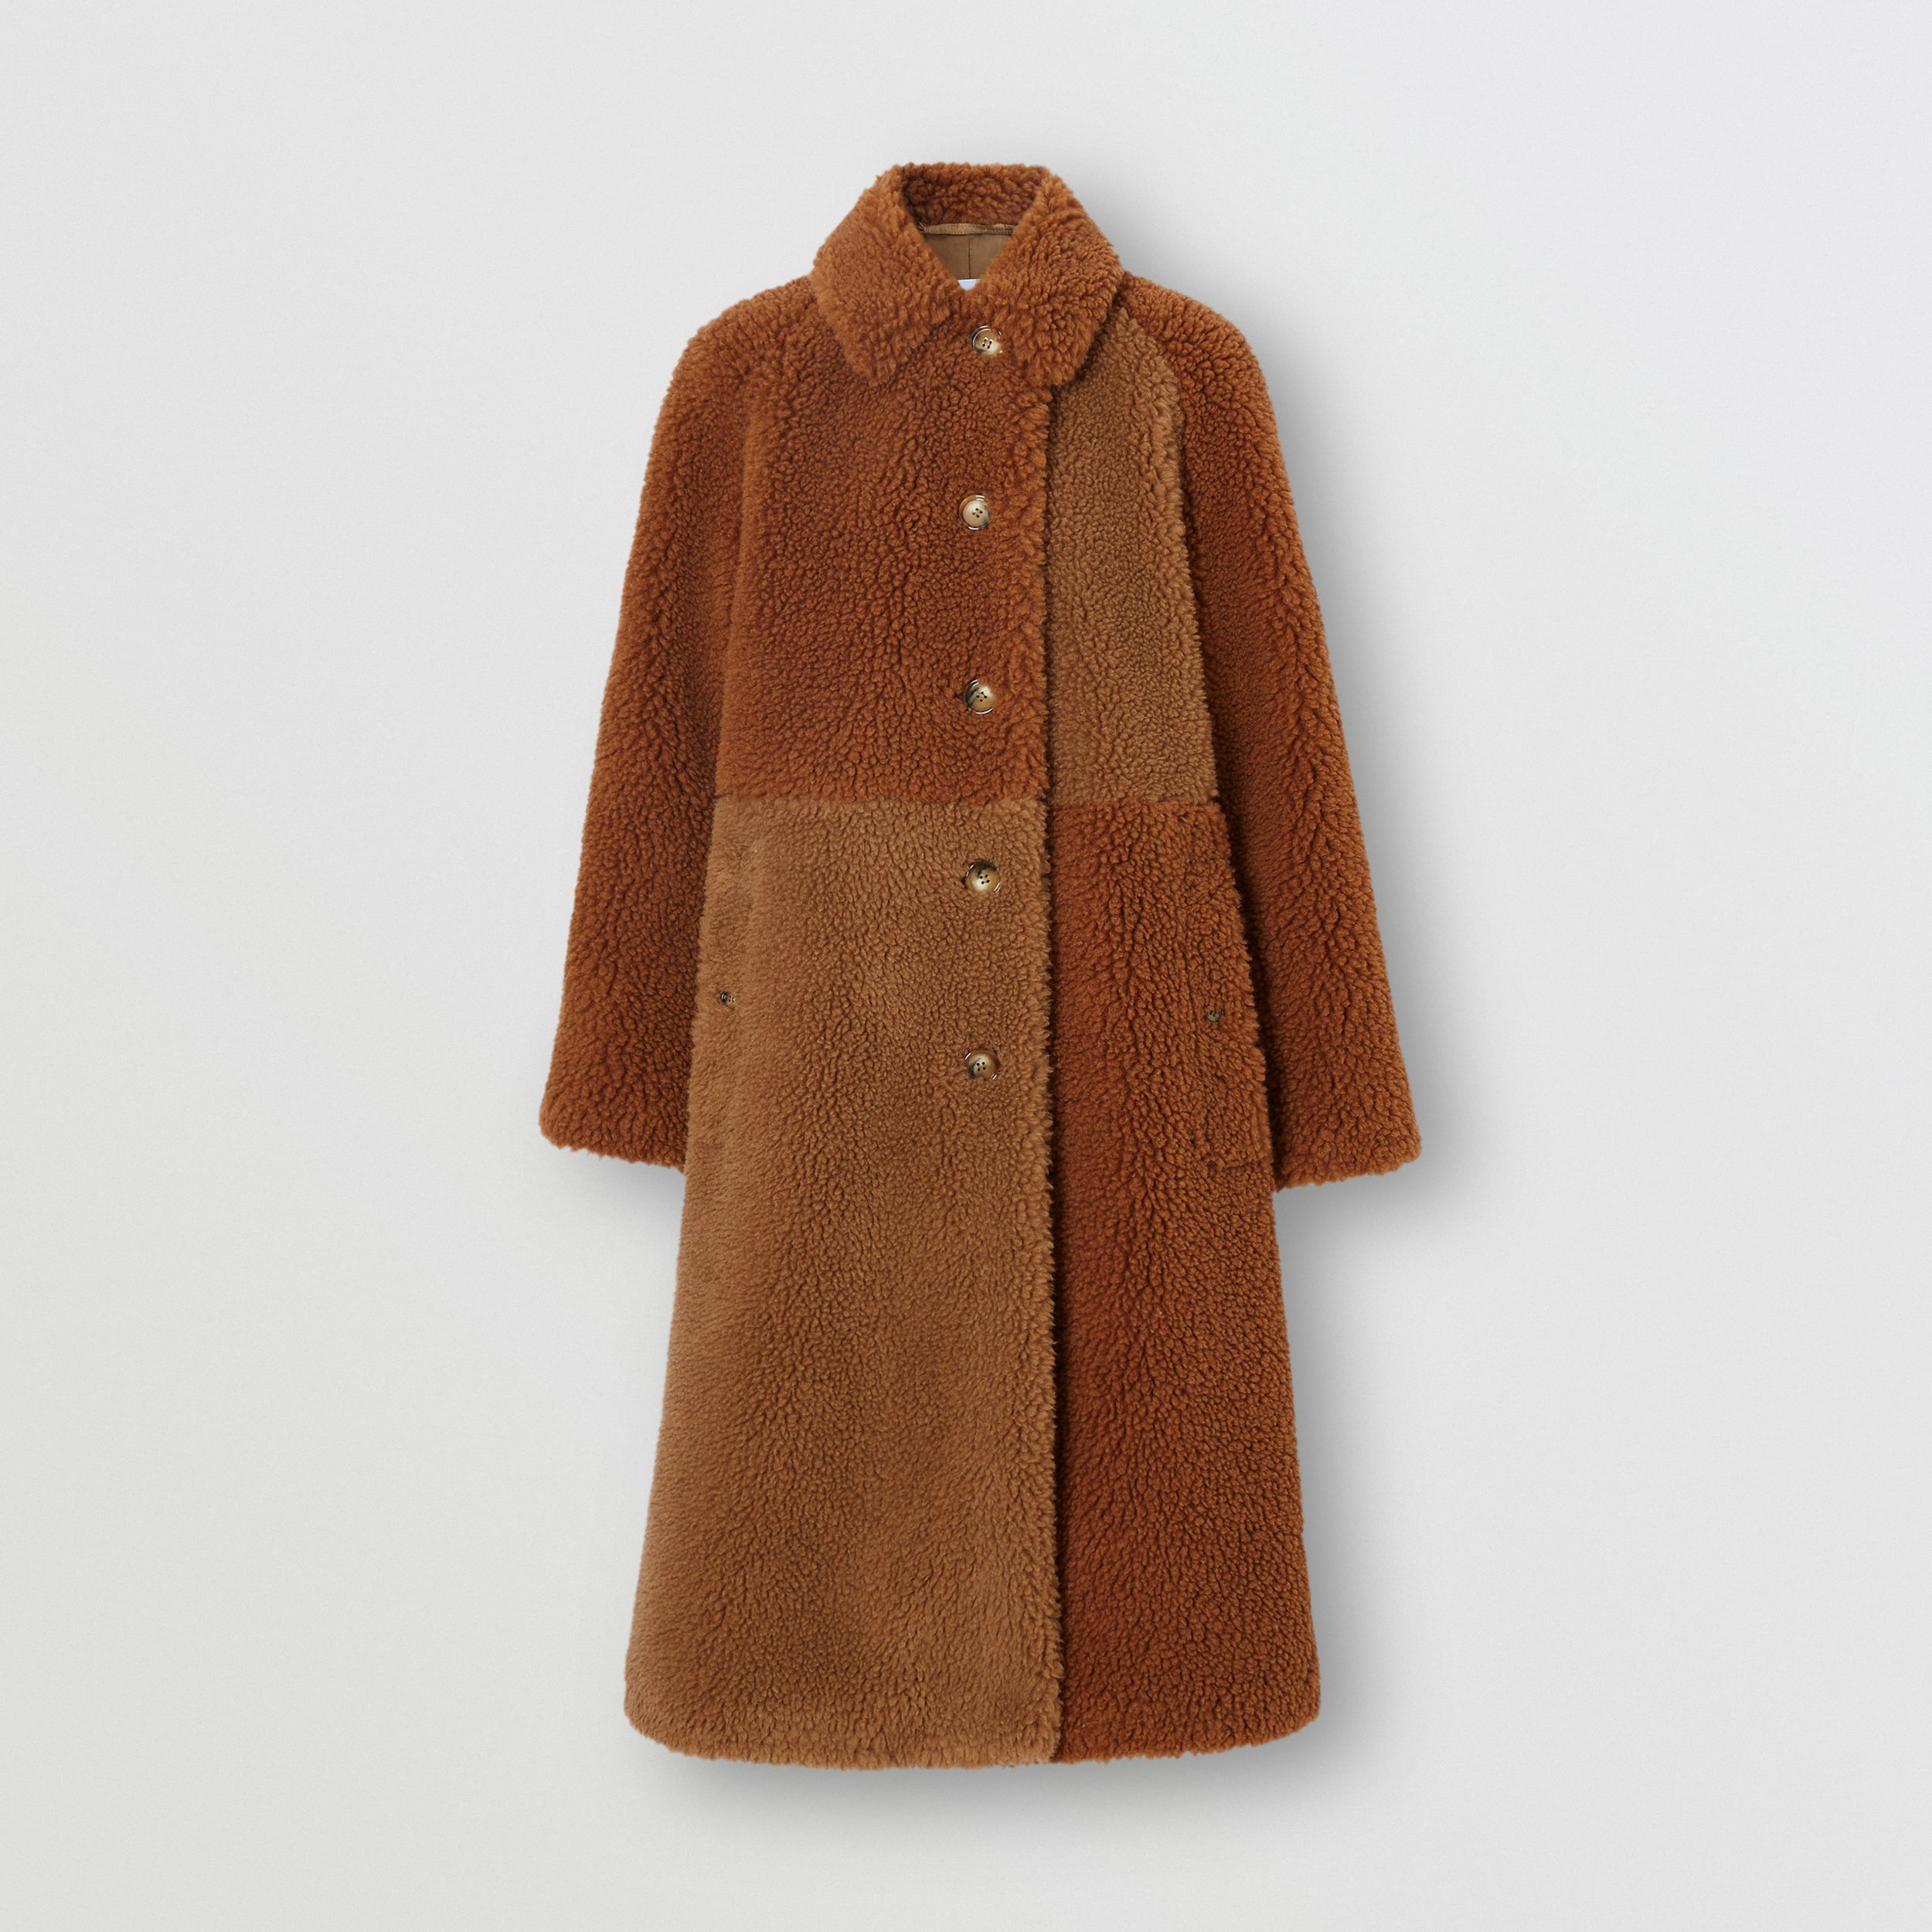 Faux Shearling and Camel Hair Blend Coat in Brown - Women | Burberry - 4